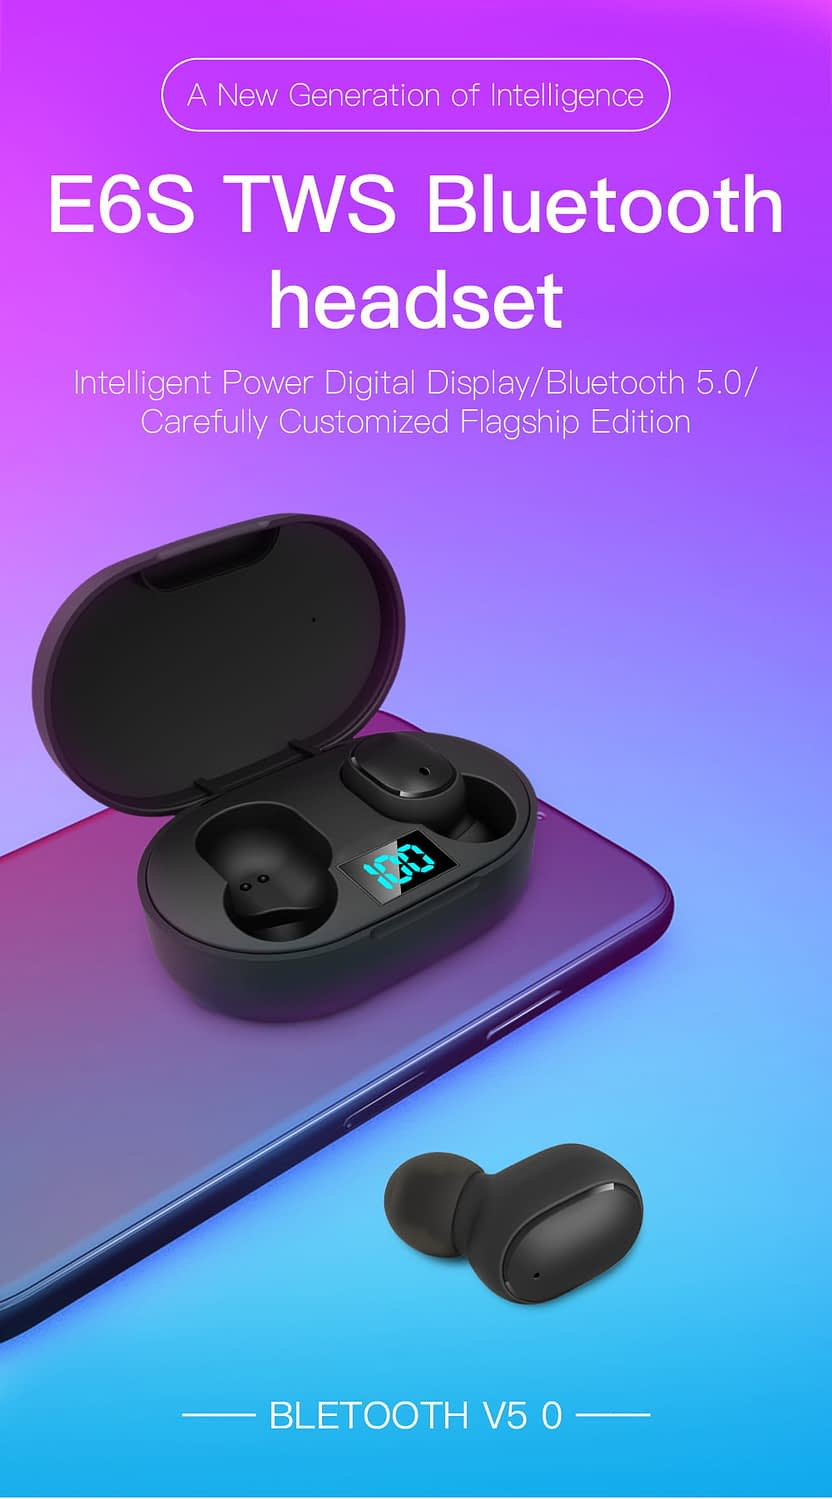 E6s tws bluetooth 5.0 earbuds digital display earphone (6)